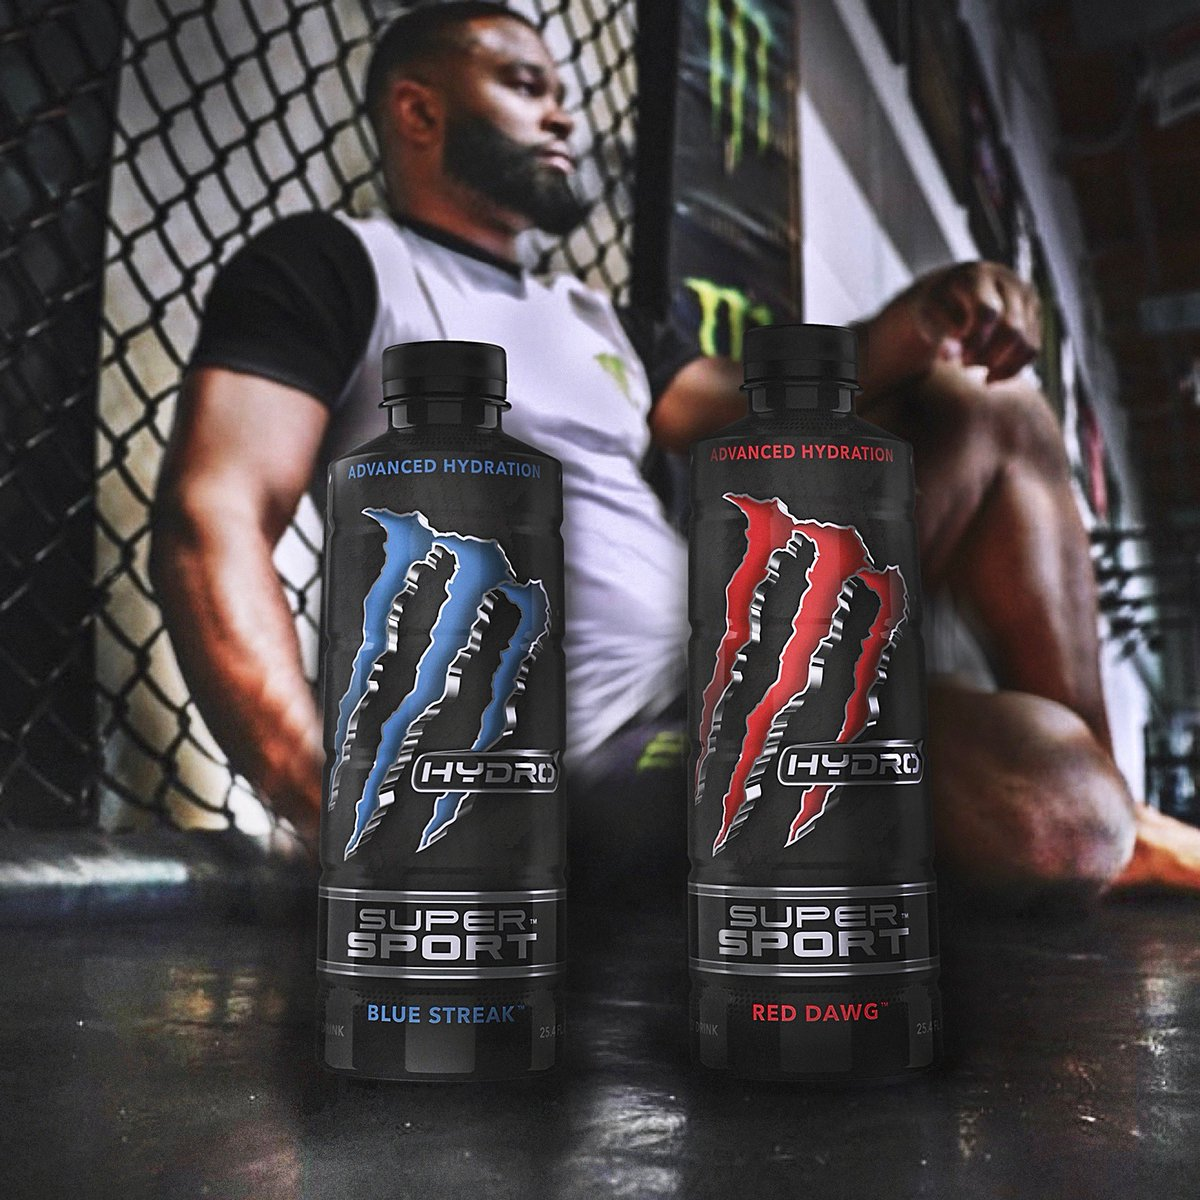 Check this NEW sports performance drink from @MonsterHydro ⚡ ...200mg caffeine, BCAAs, electrolytes and only 70 calories per bottle! #HydroSuperSport  #HardChargingHydration #AdvancedHydration https://t.co/wJ3BWZeRq6